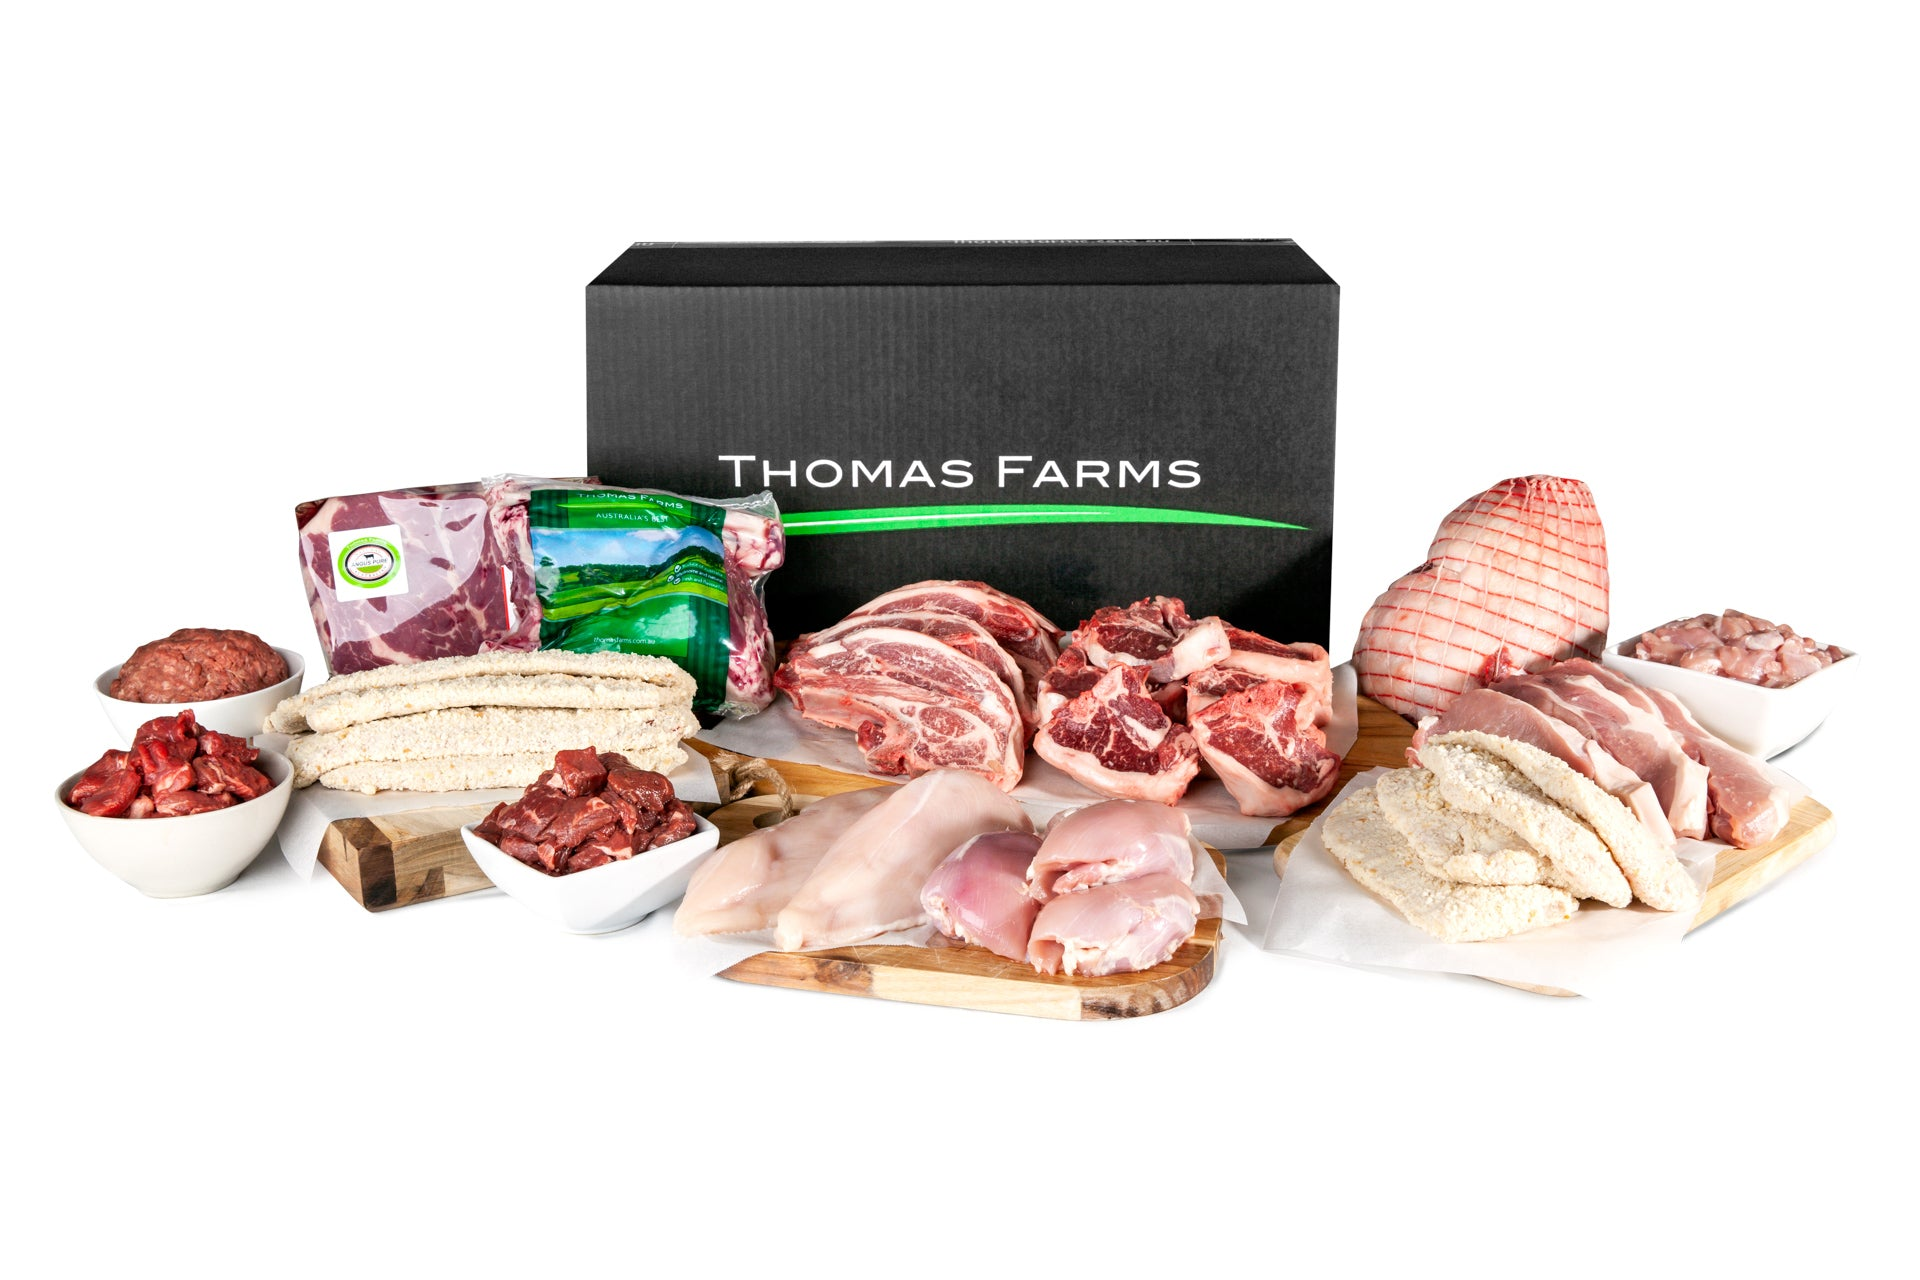 Exploded Family Value Meat Box displaying products offered